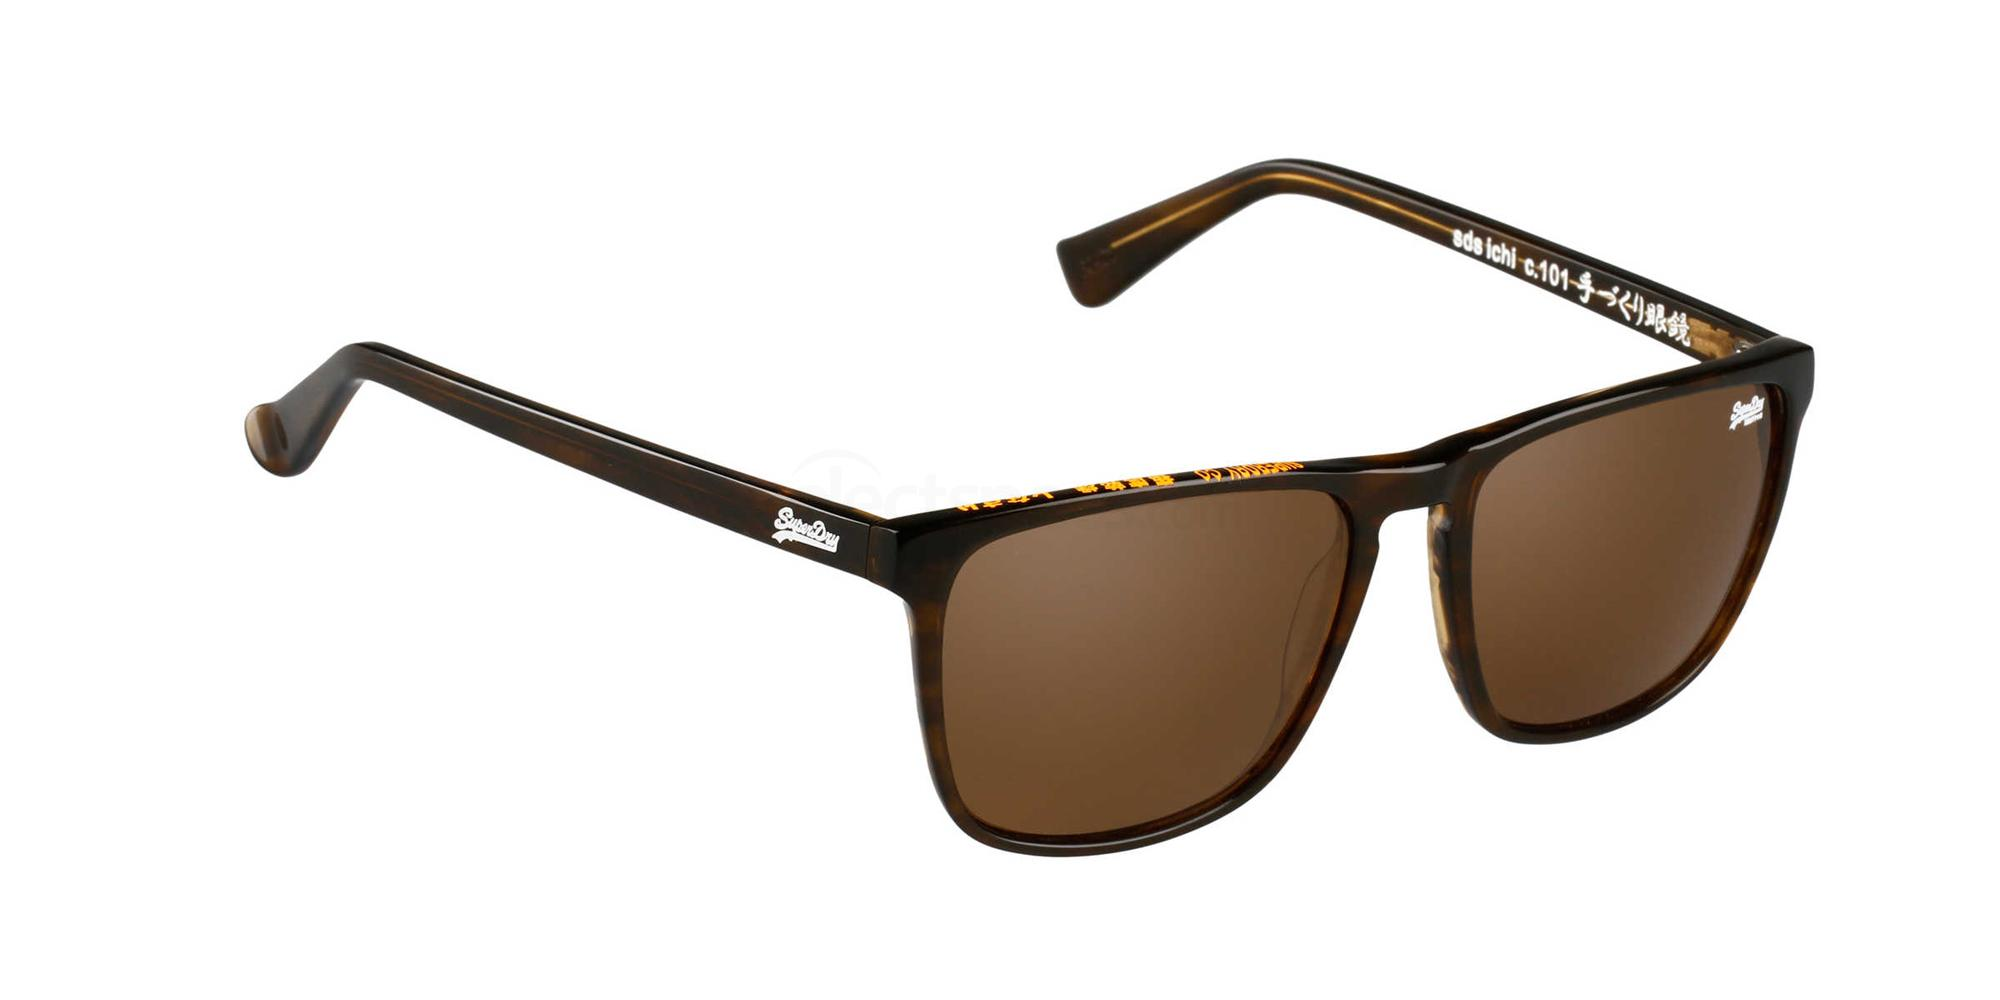 101 SDS-ICHI Sunglasses, Superdry